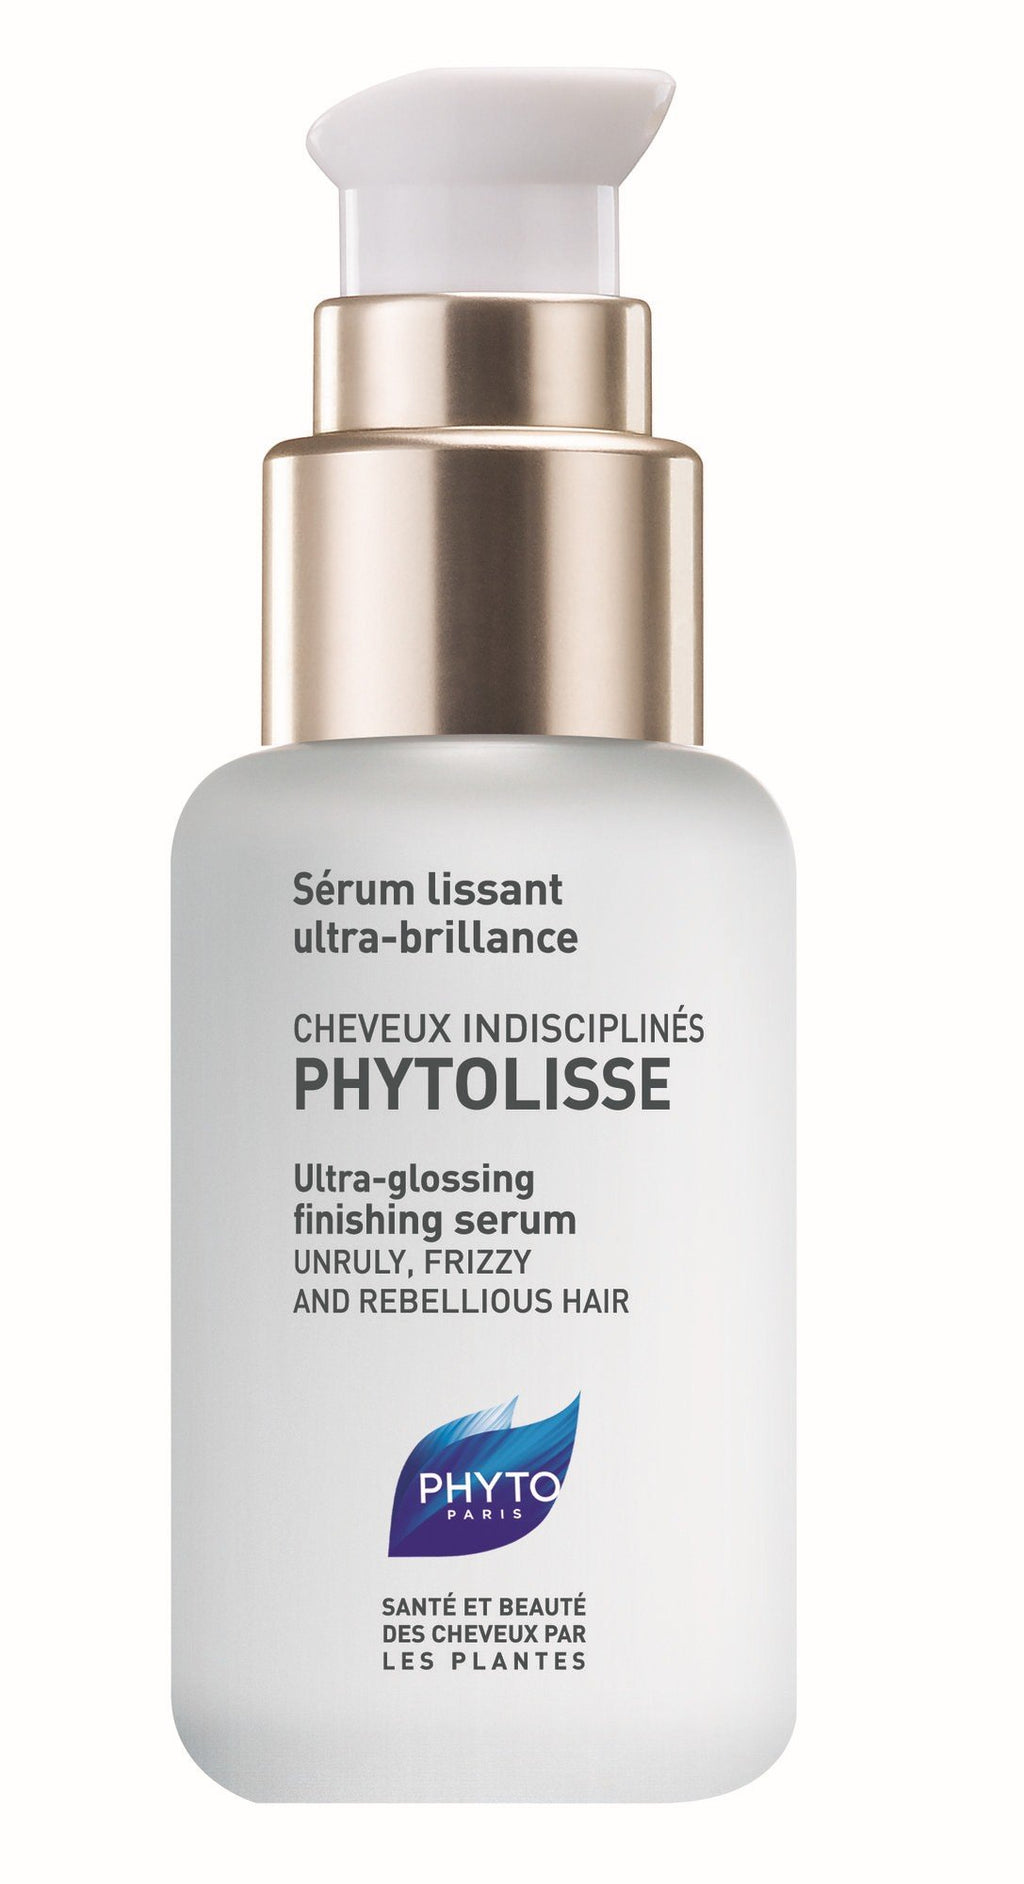 phyto-phytolisse-ultra-glossing-hair-serum-cosmetics-online